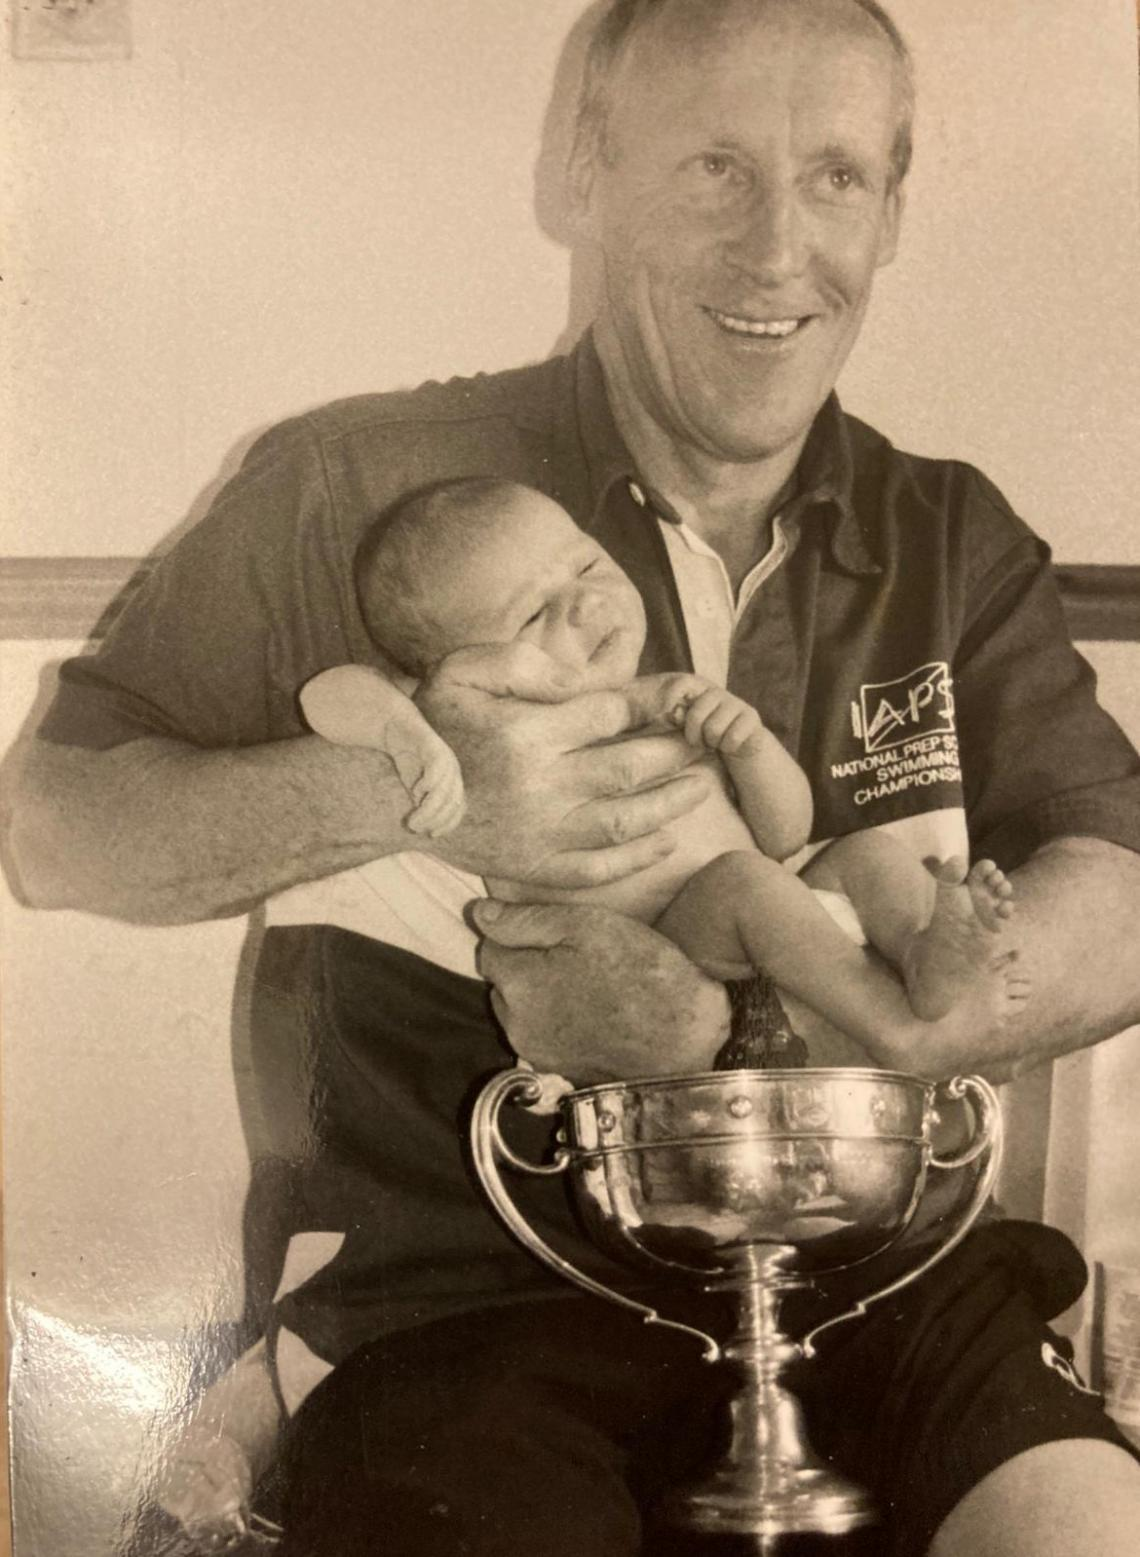 In 2004 Norman became a grandfather three days before his third Bridge to Bridge victory.  Three day old Isabelle neatly fitted into the trophy.